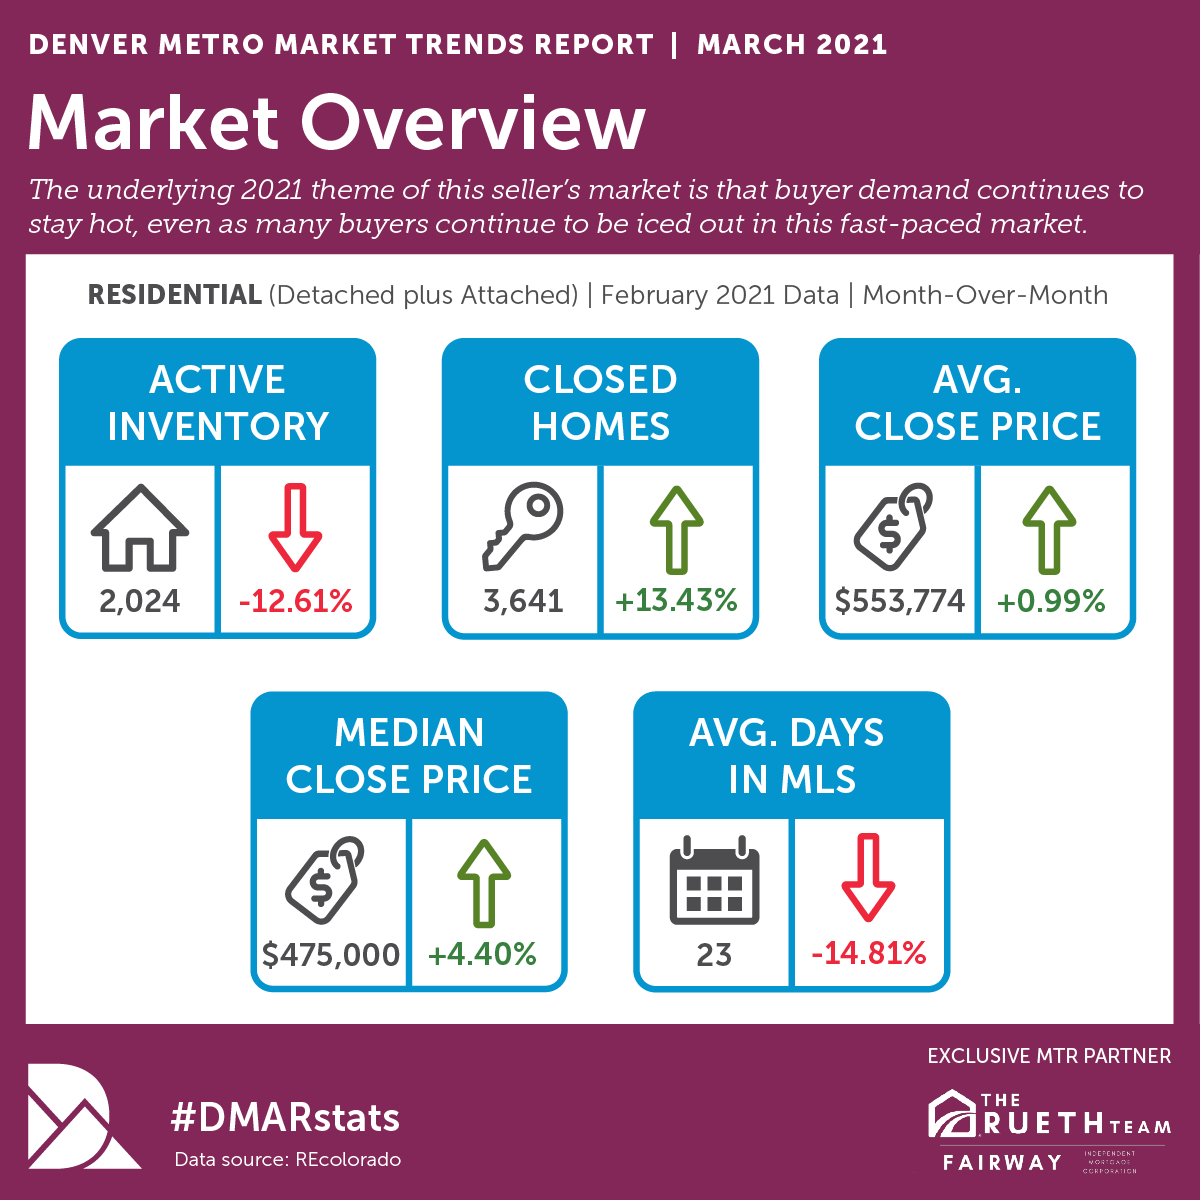 Market Overview